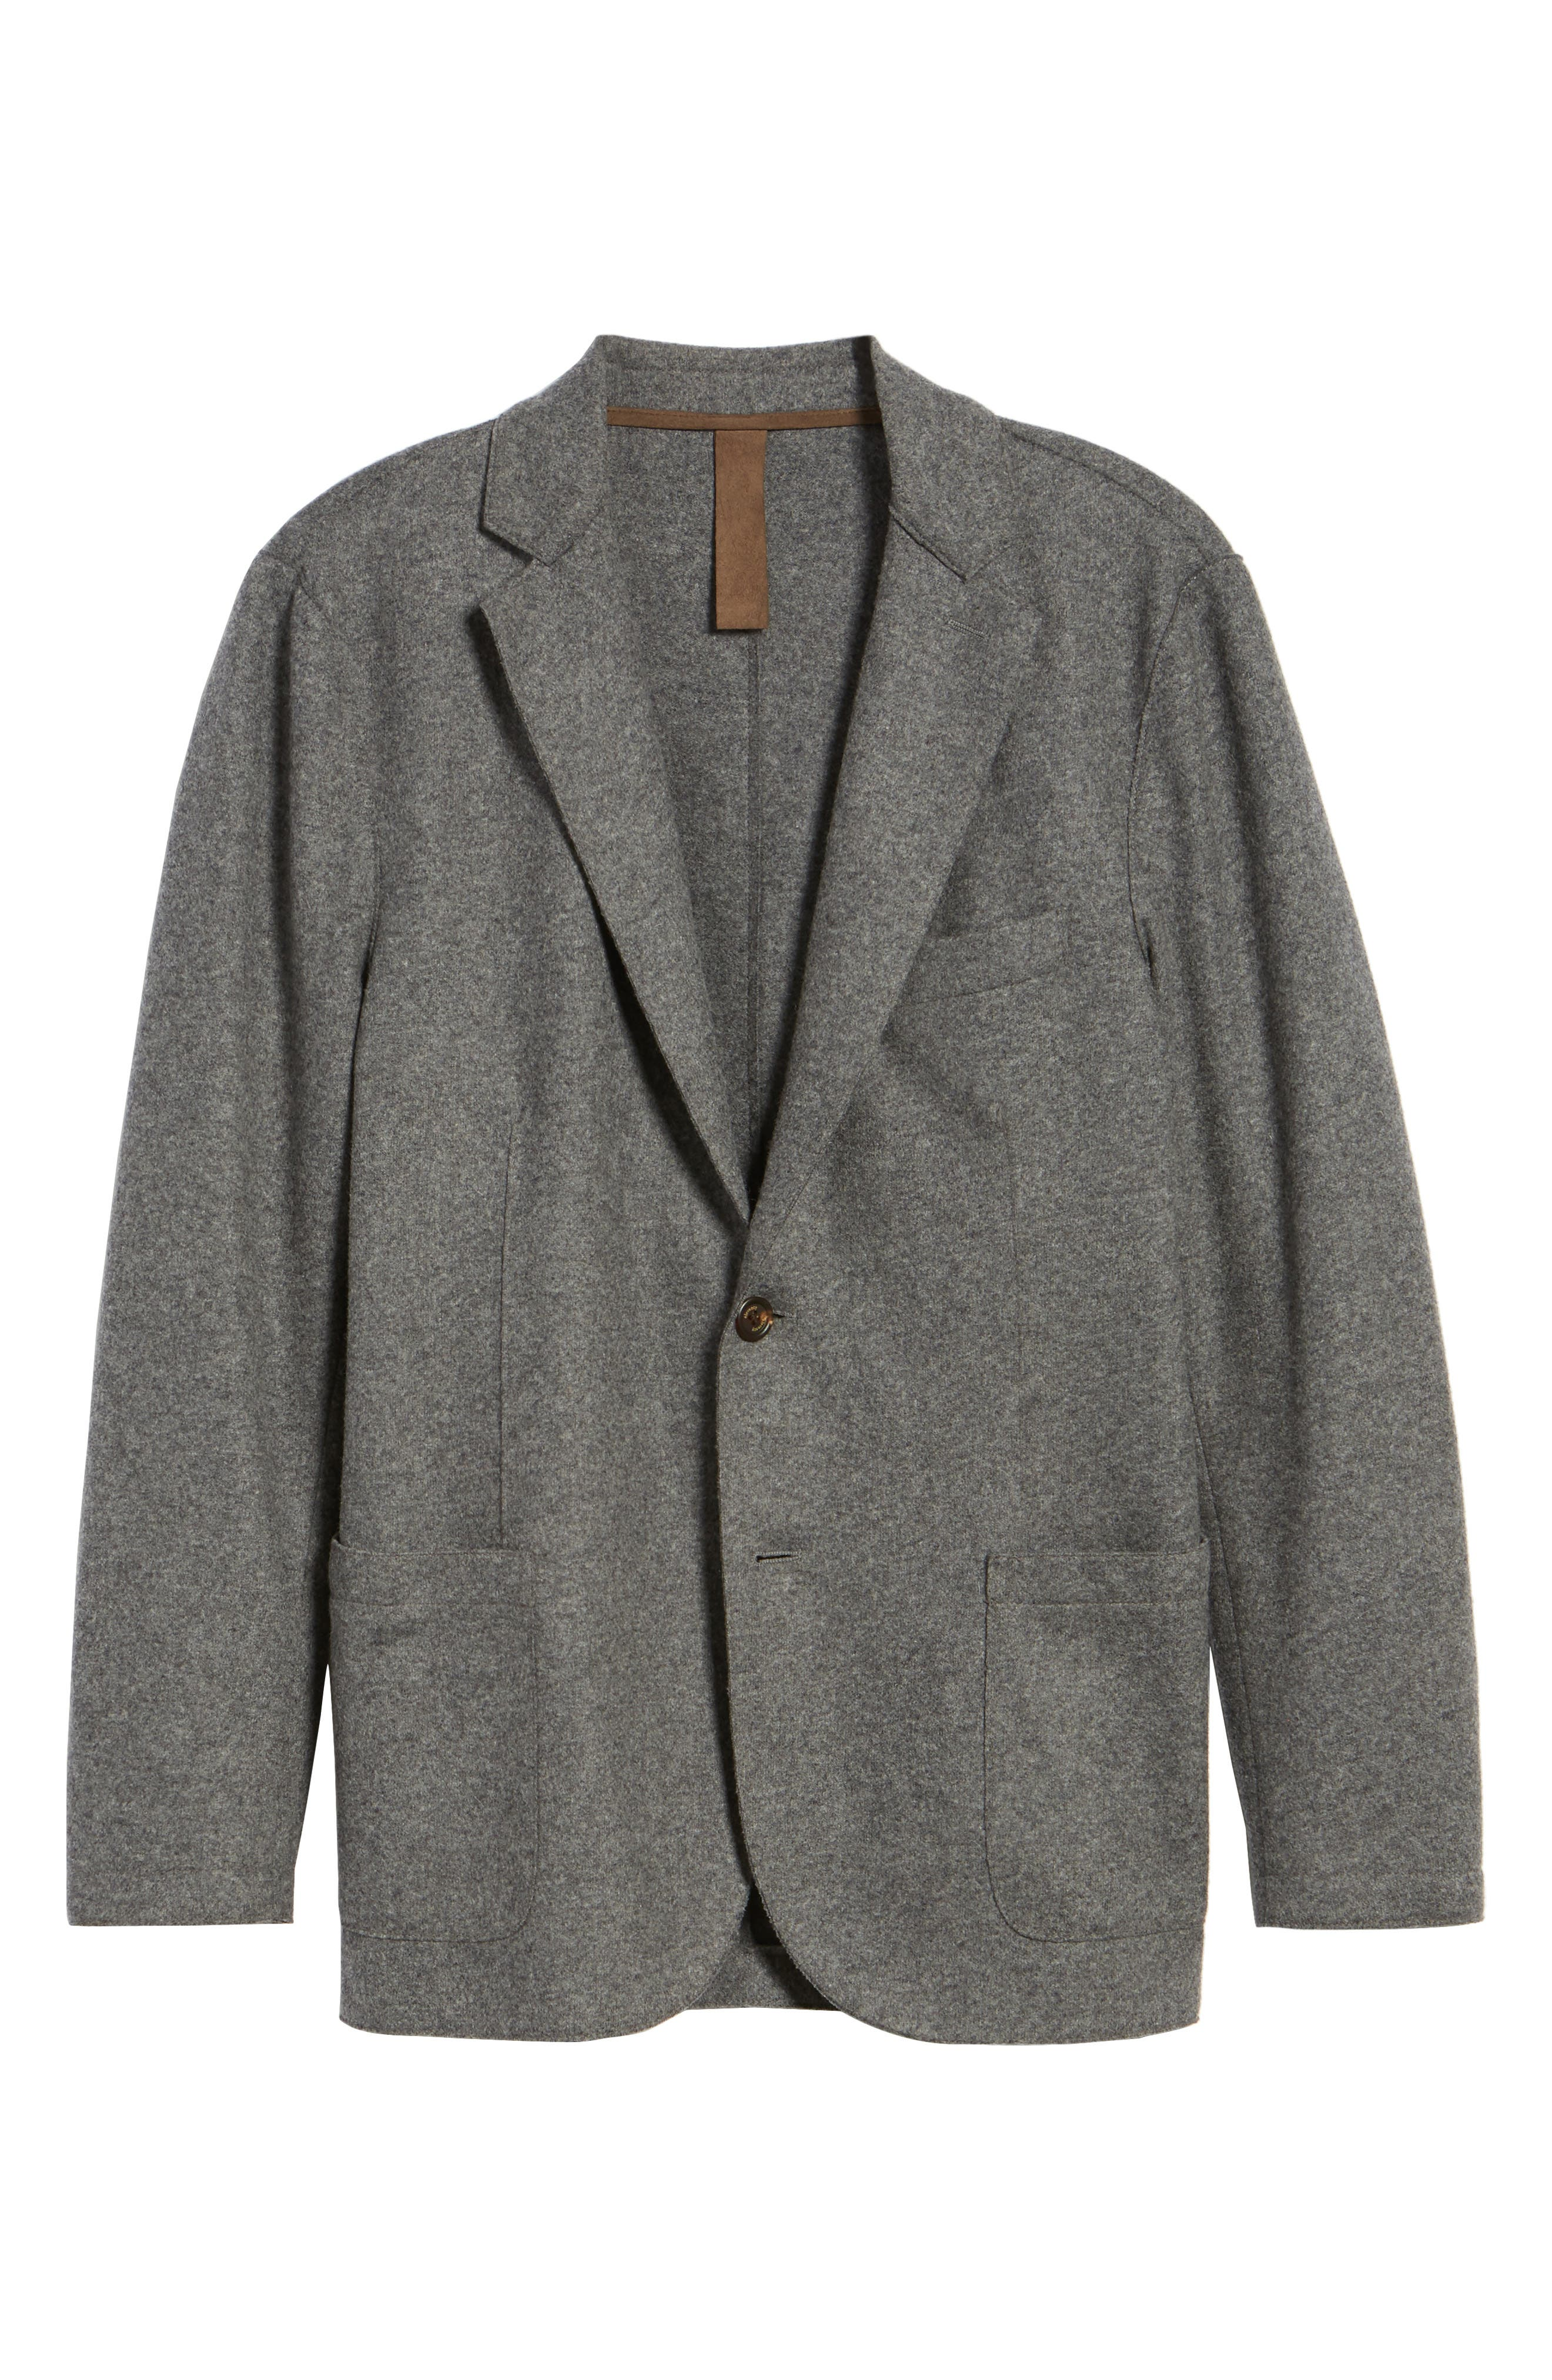 Wool Blend Blazer,                             Alternate thumbnail 5, color,                             SMOKE GREY MELANGE